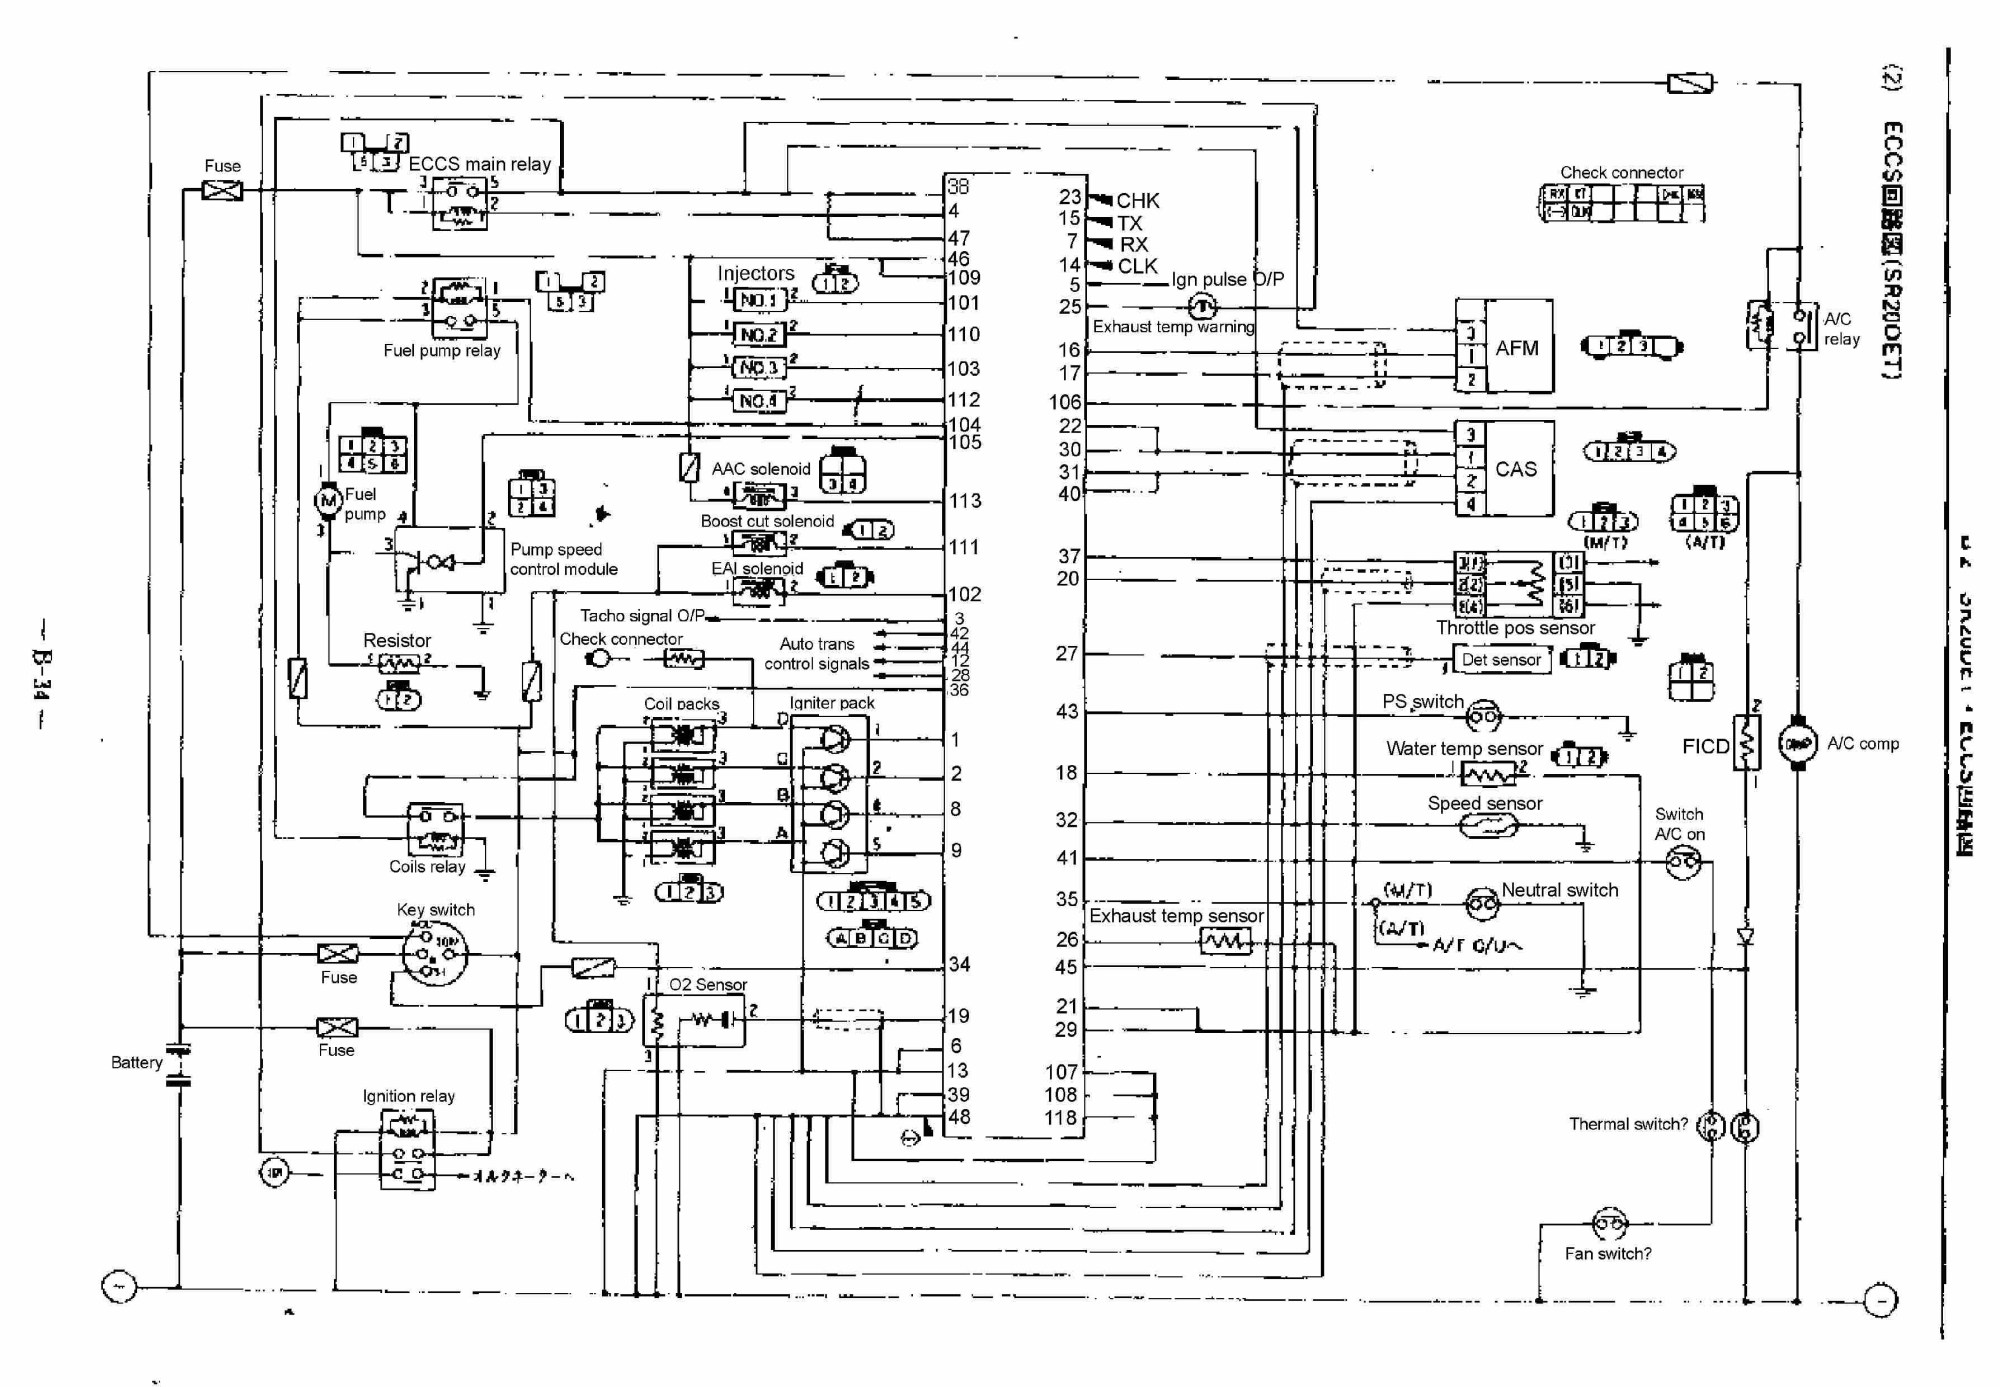 hight resolution of 1995 nissan pickup engine diagram electrical wiring diagrams collision body repair manual nissan note of 1995